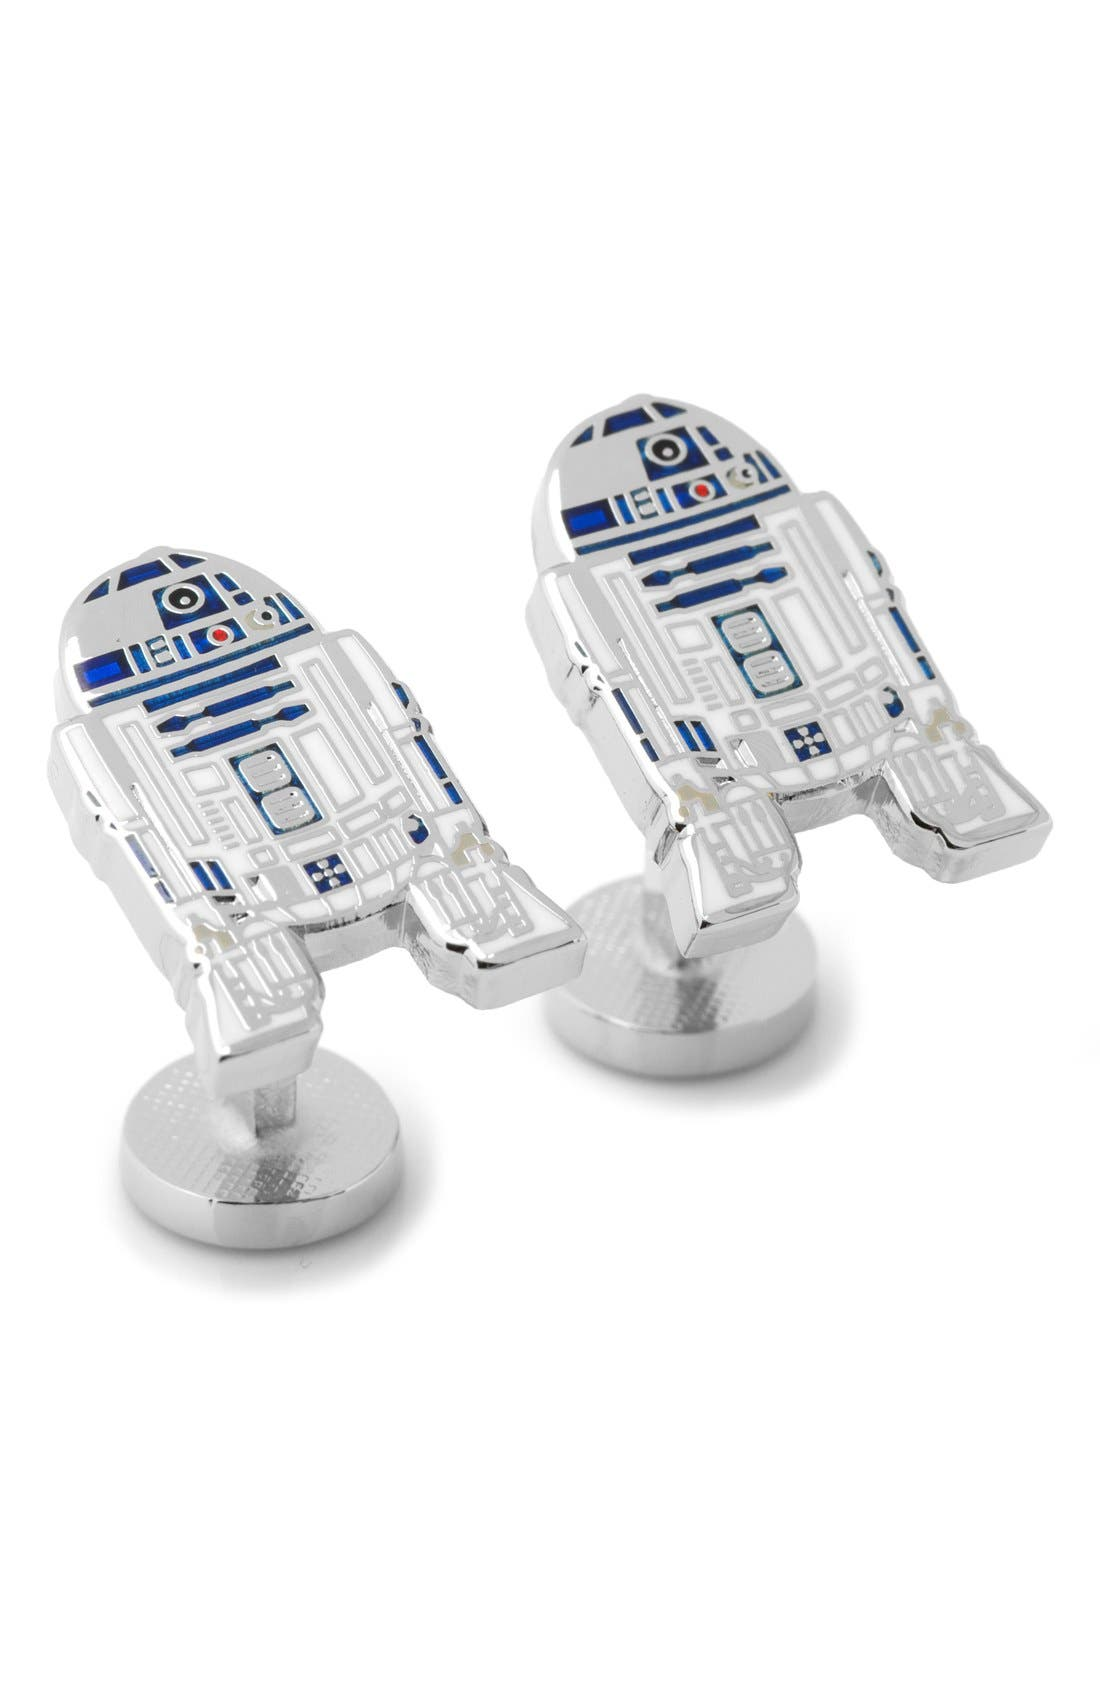 Star Wars R2D2 Cuff Links,                         Main,                         color, GREY MULTI